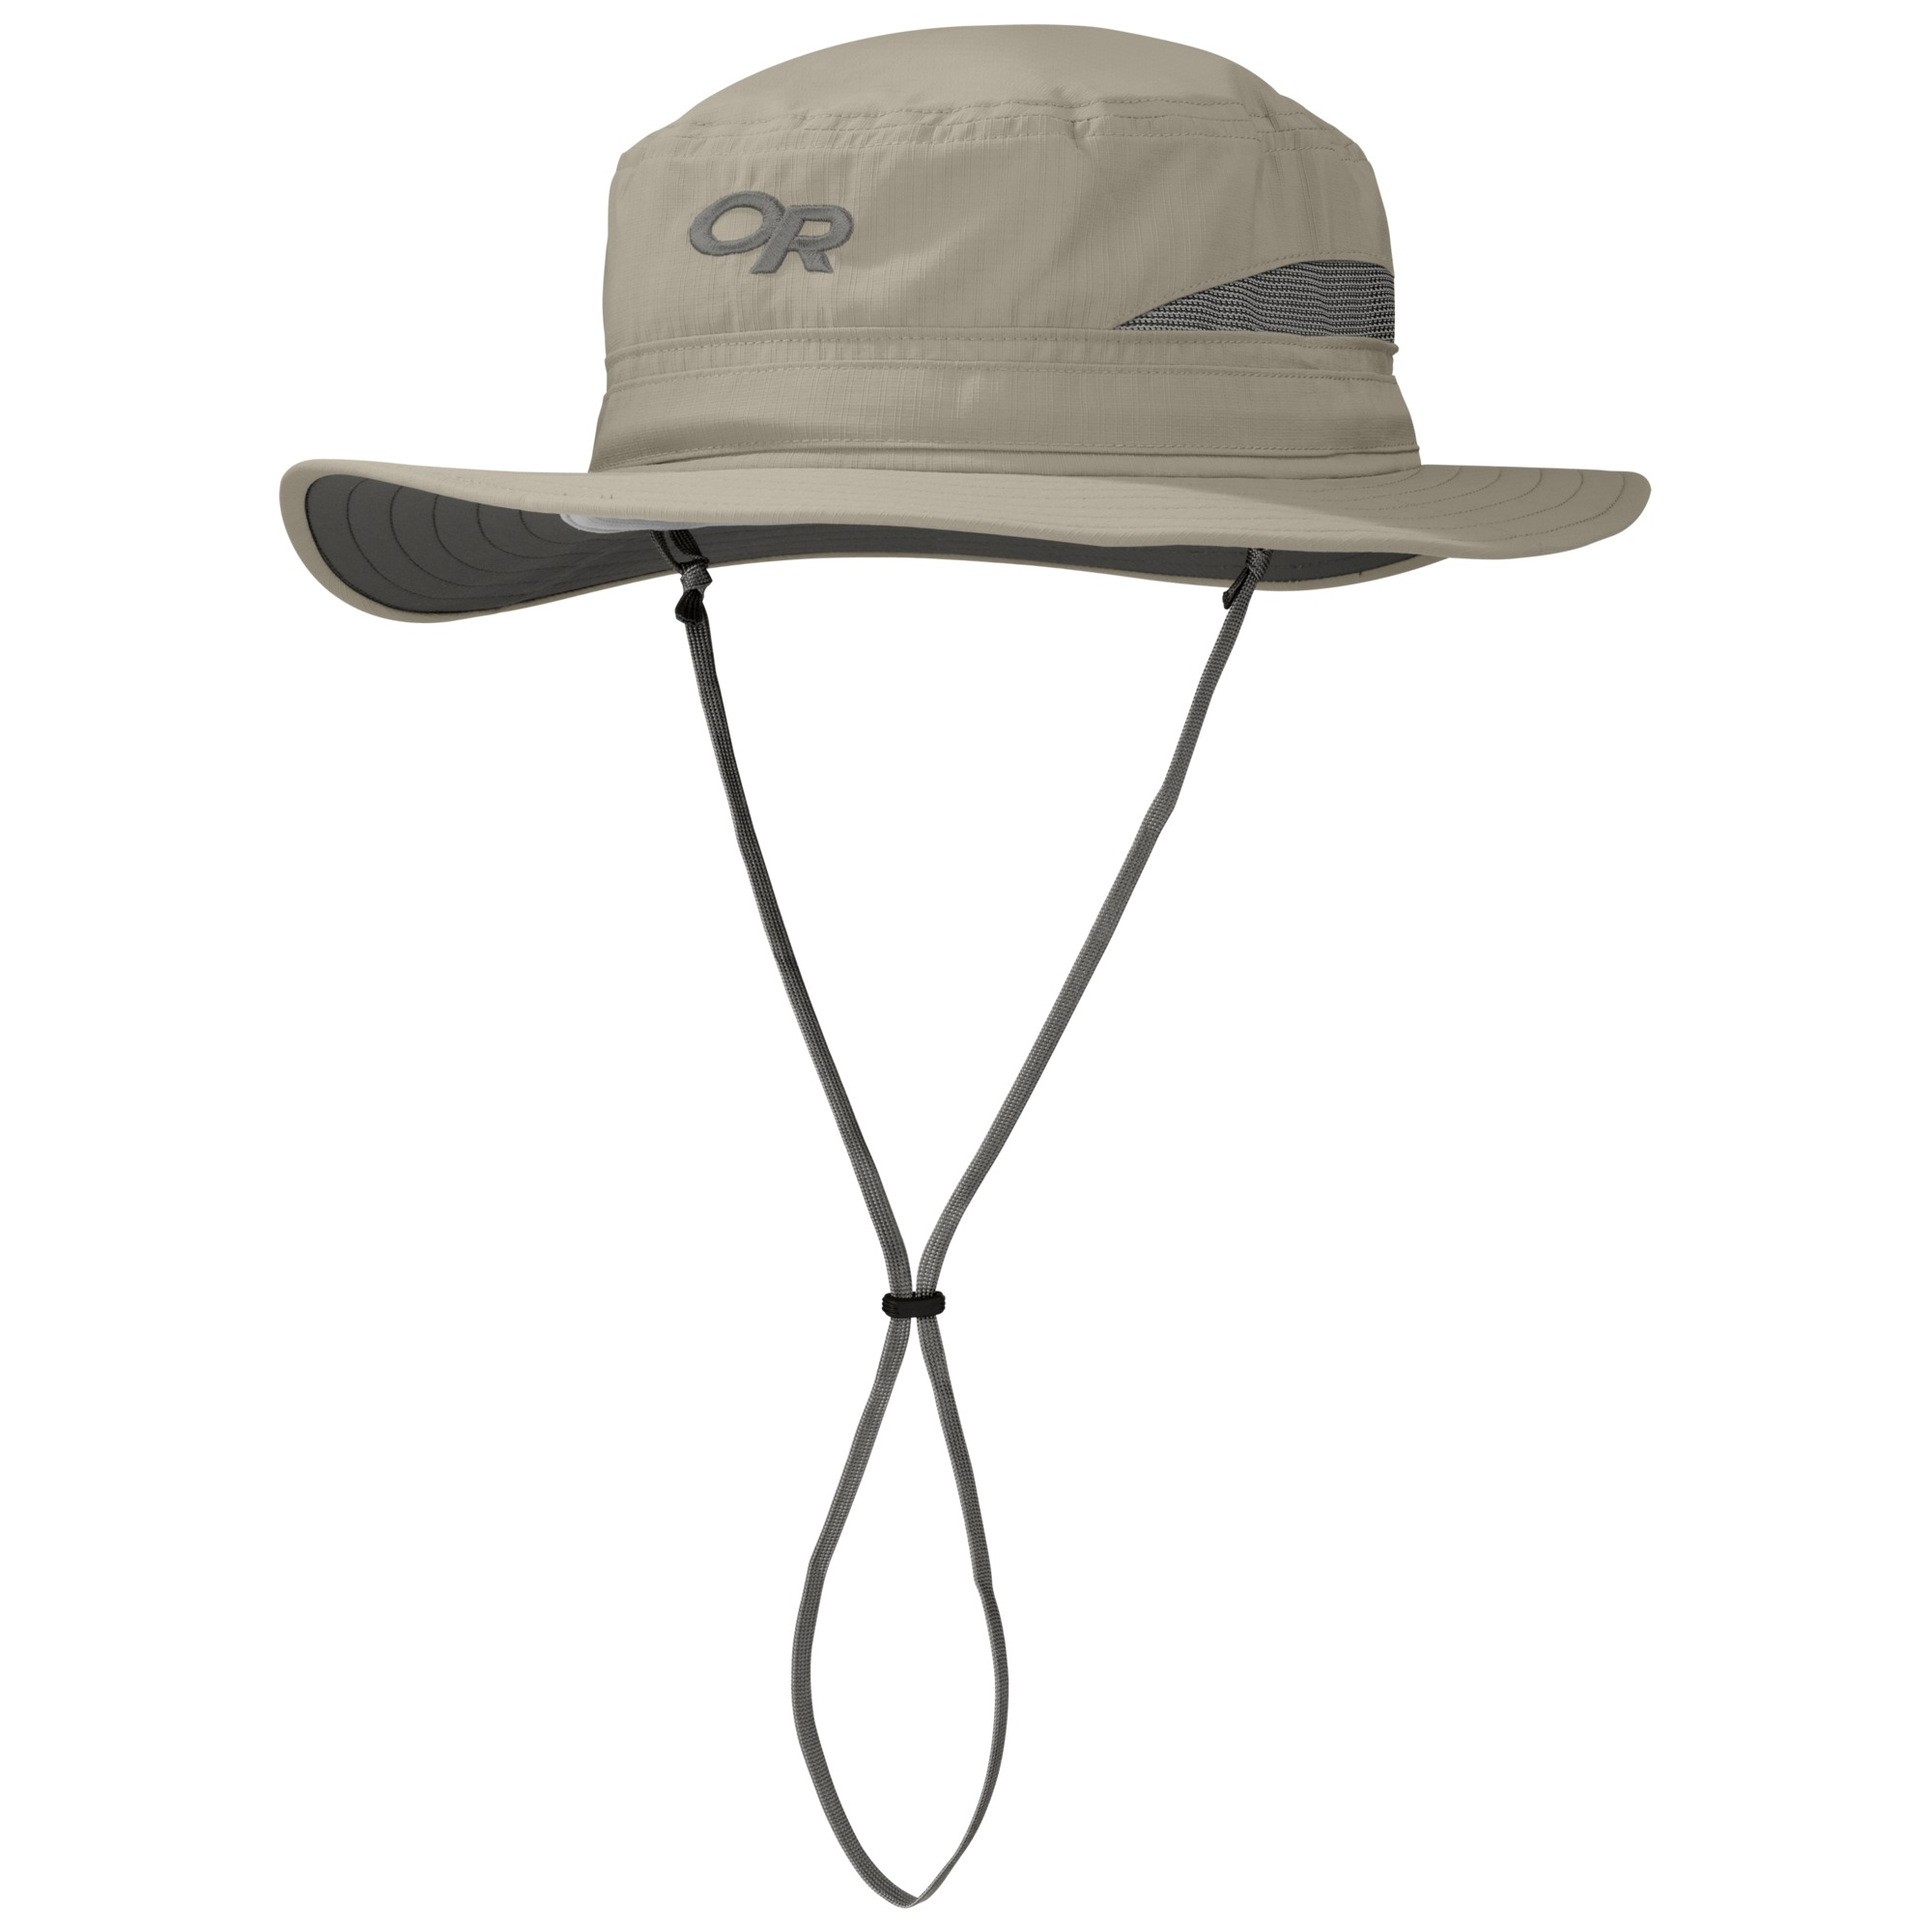 be3887f7e83860 Bugout Brim Hat - khaki | Outdoor Research